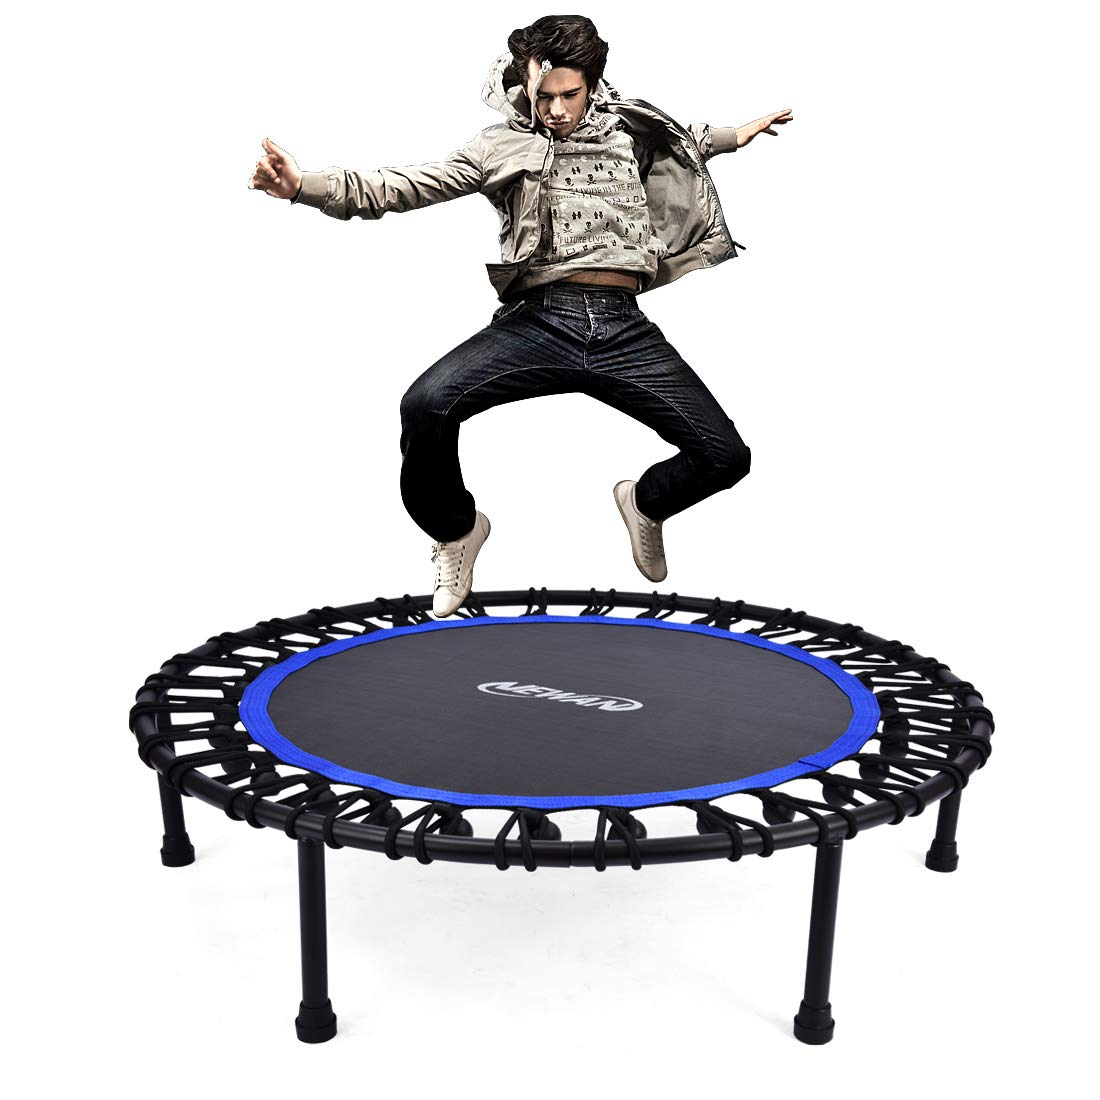 Newan 40'' Silent Mini Trampoline Fitness Trampoline Bungee Rebounder Jumping Cardio Trainer Workout for Adults or Kids (Max. Load 330lbs)